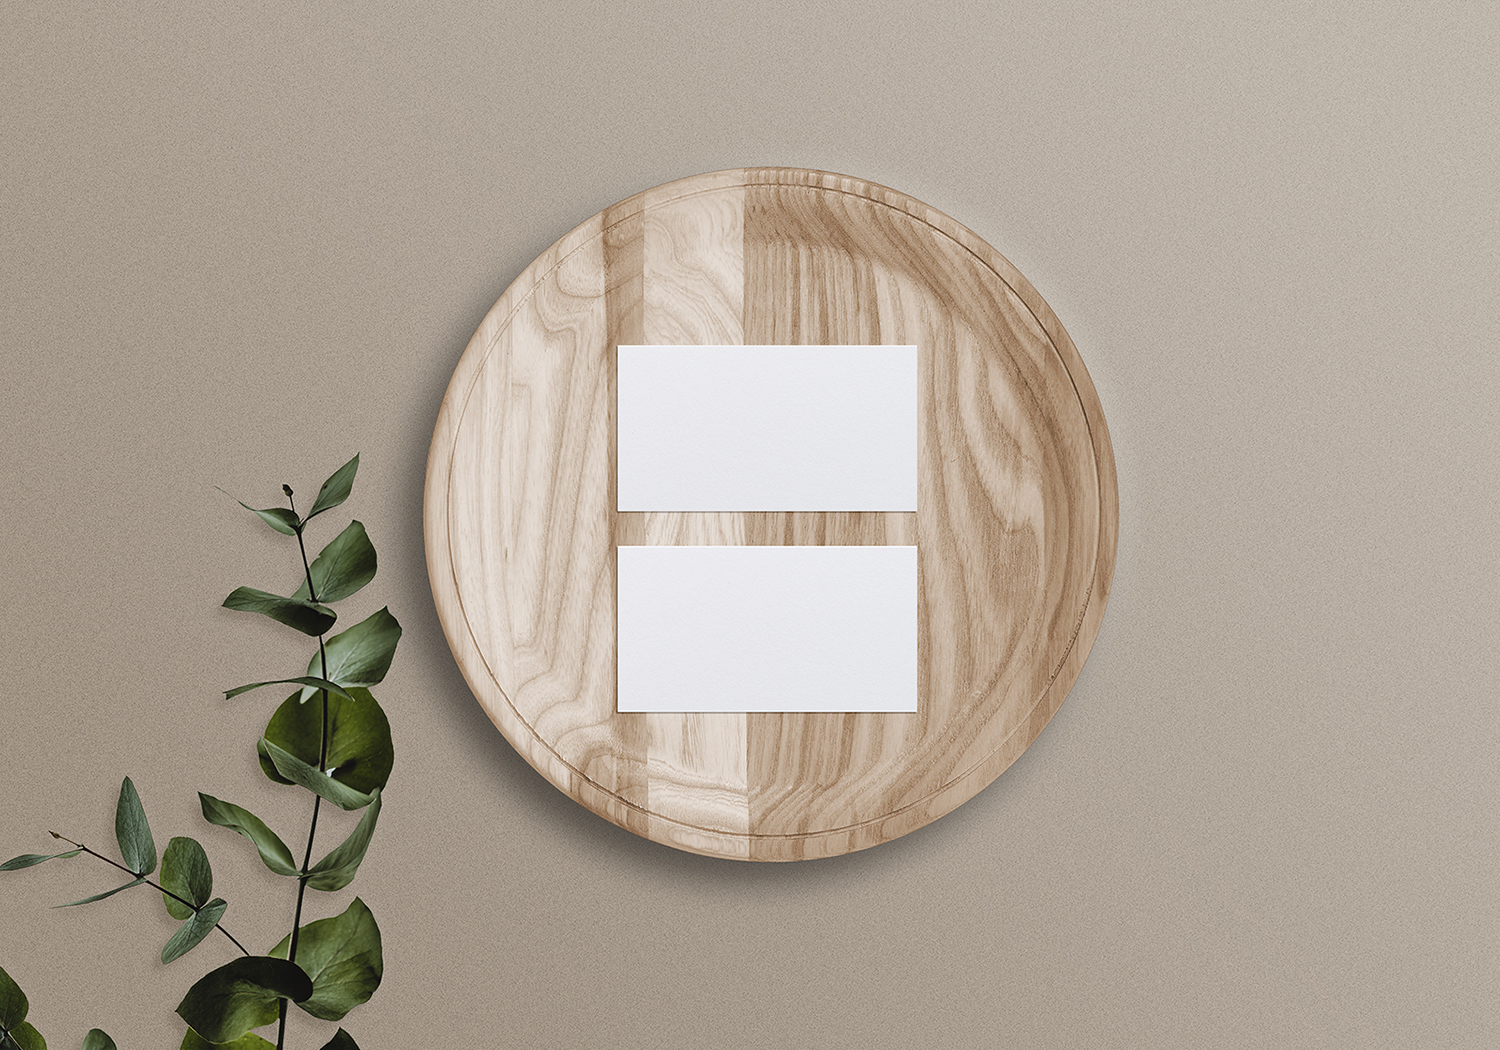 Business Card Mockup on a Wooden Tray